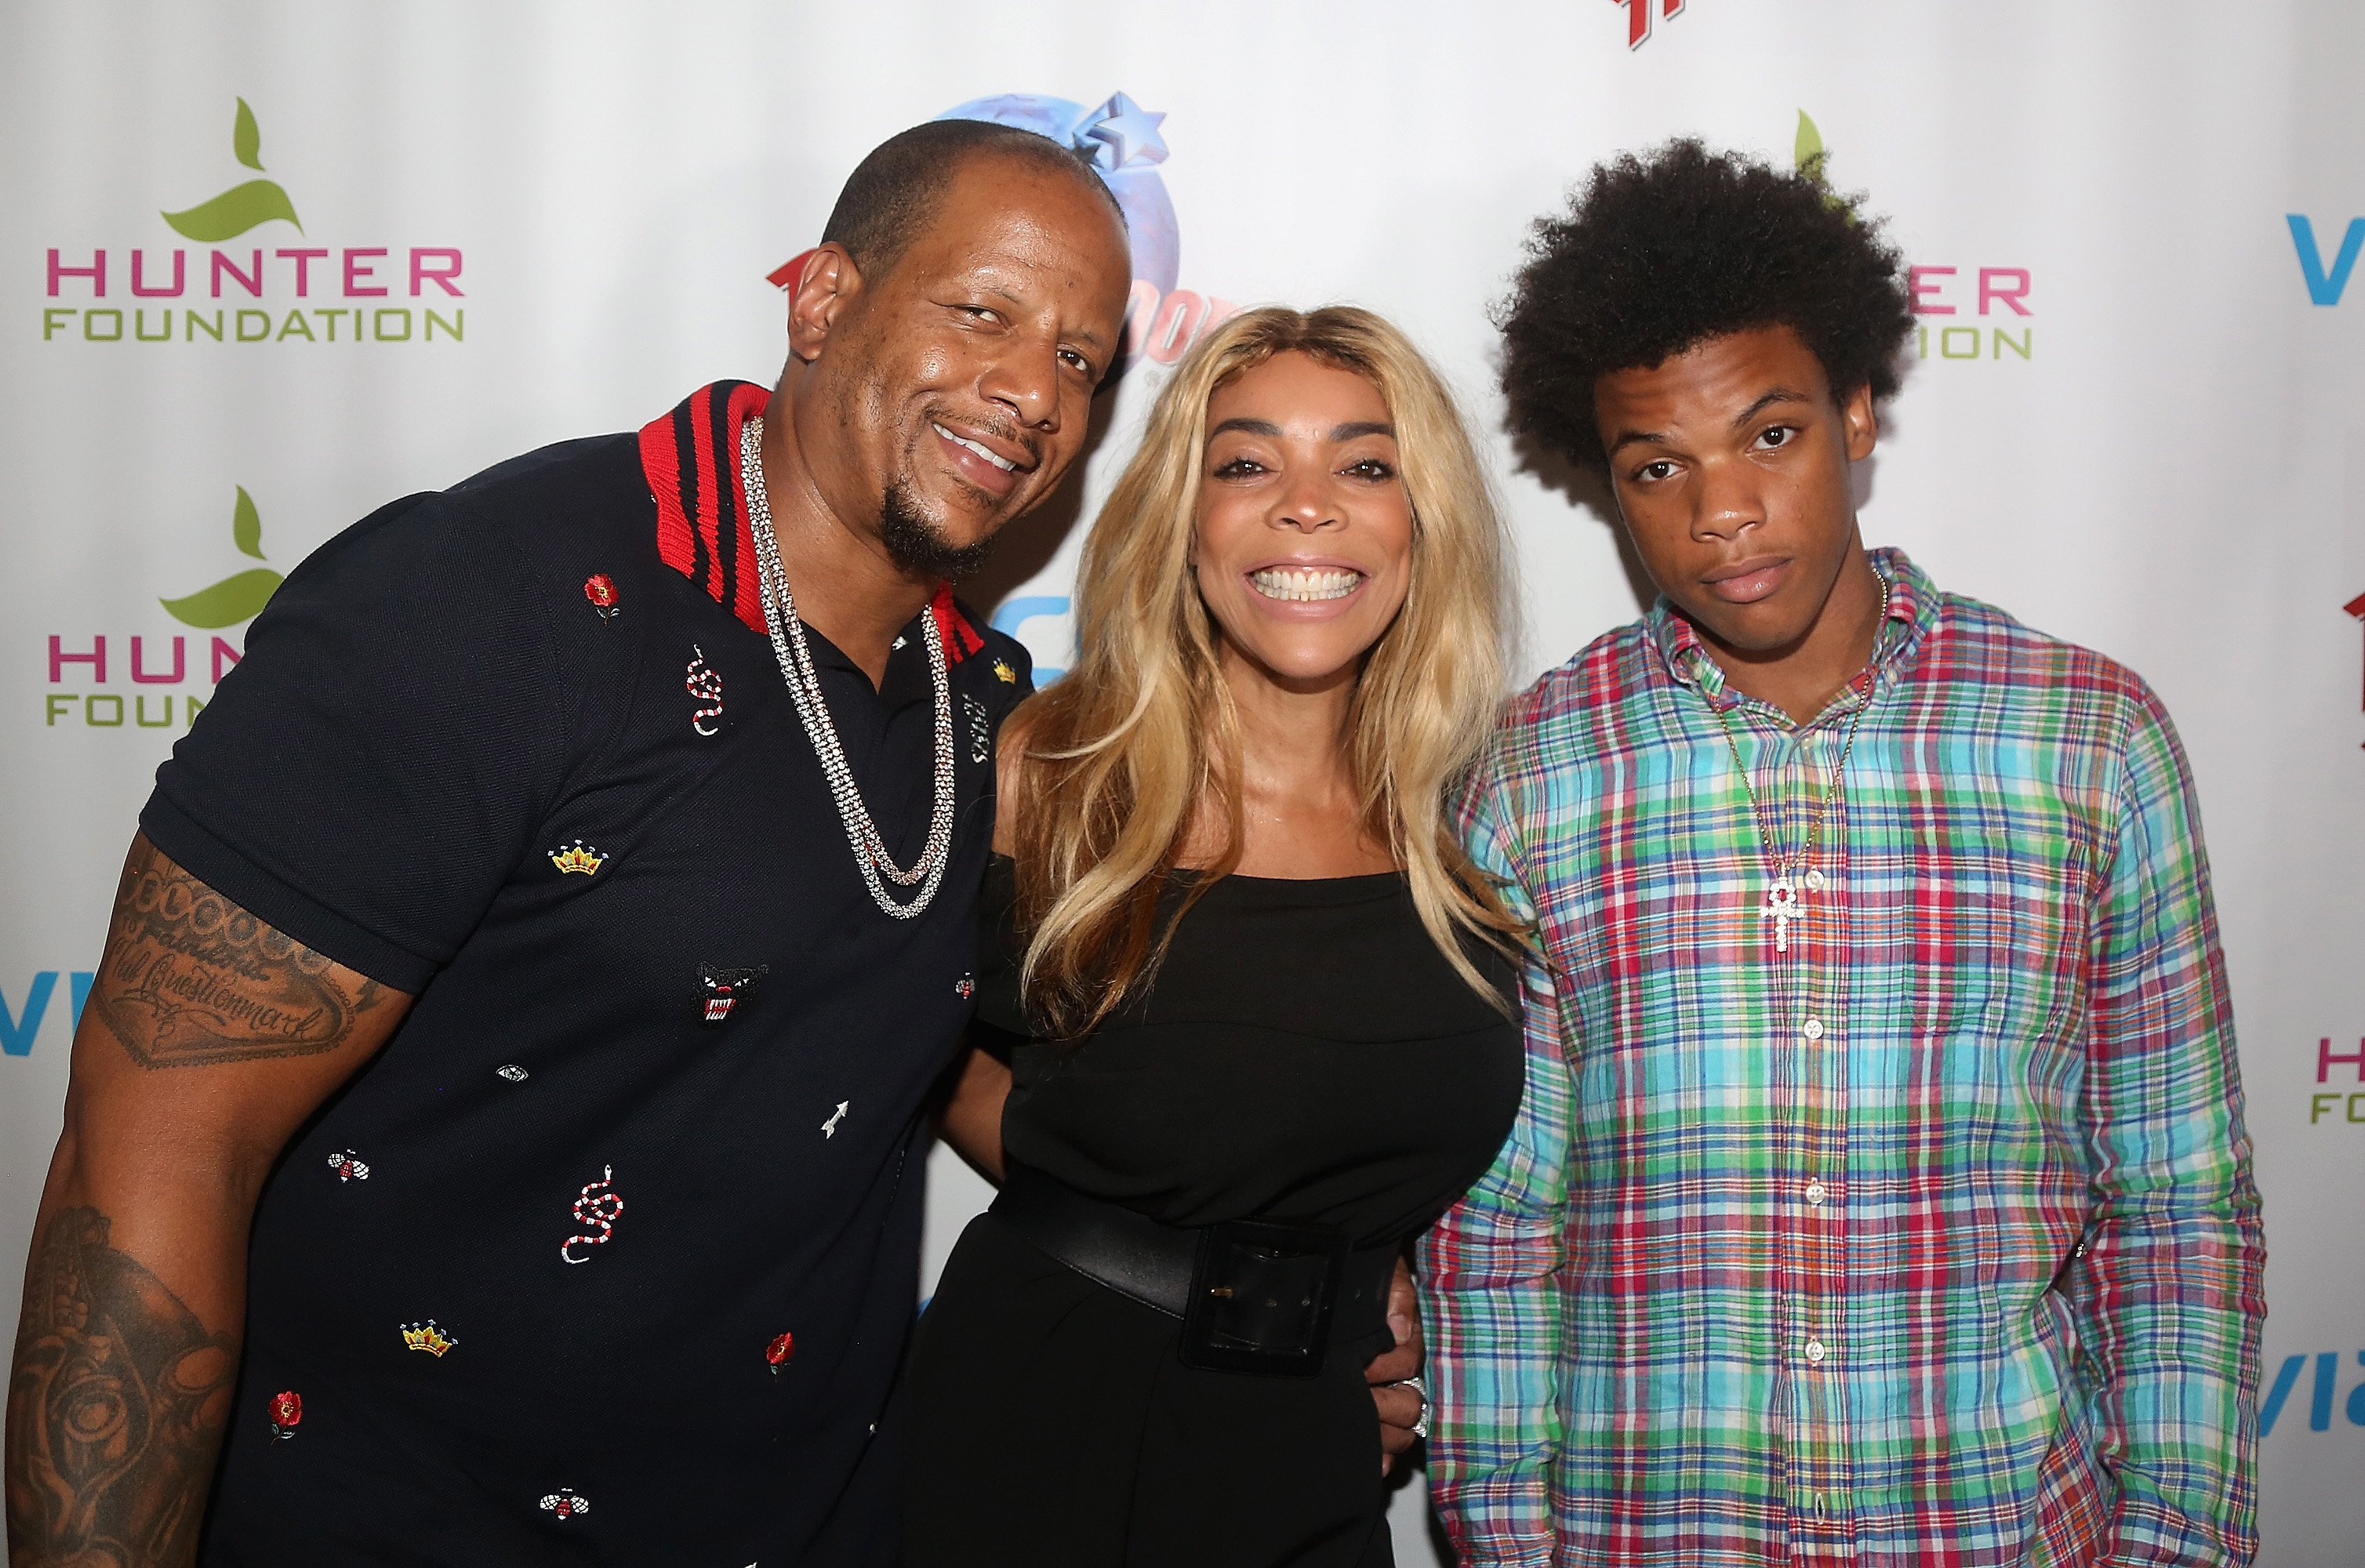 Kevin Hunter, Wendy Williams & Kevin Hunter Jr. in New York City on July 11, 2017 | Photo: Getty Images